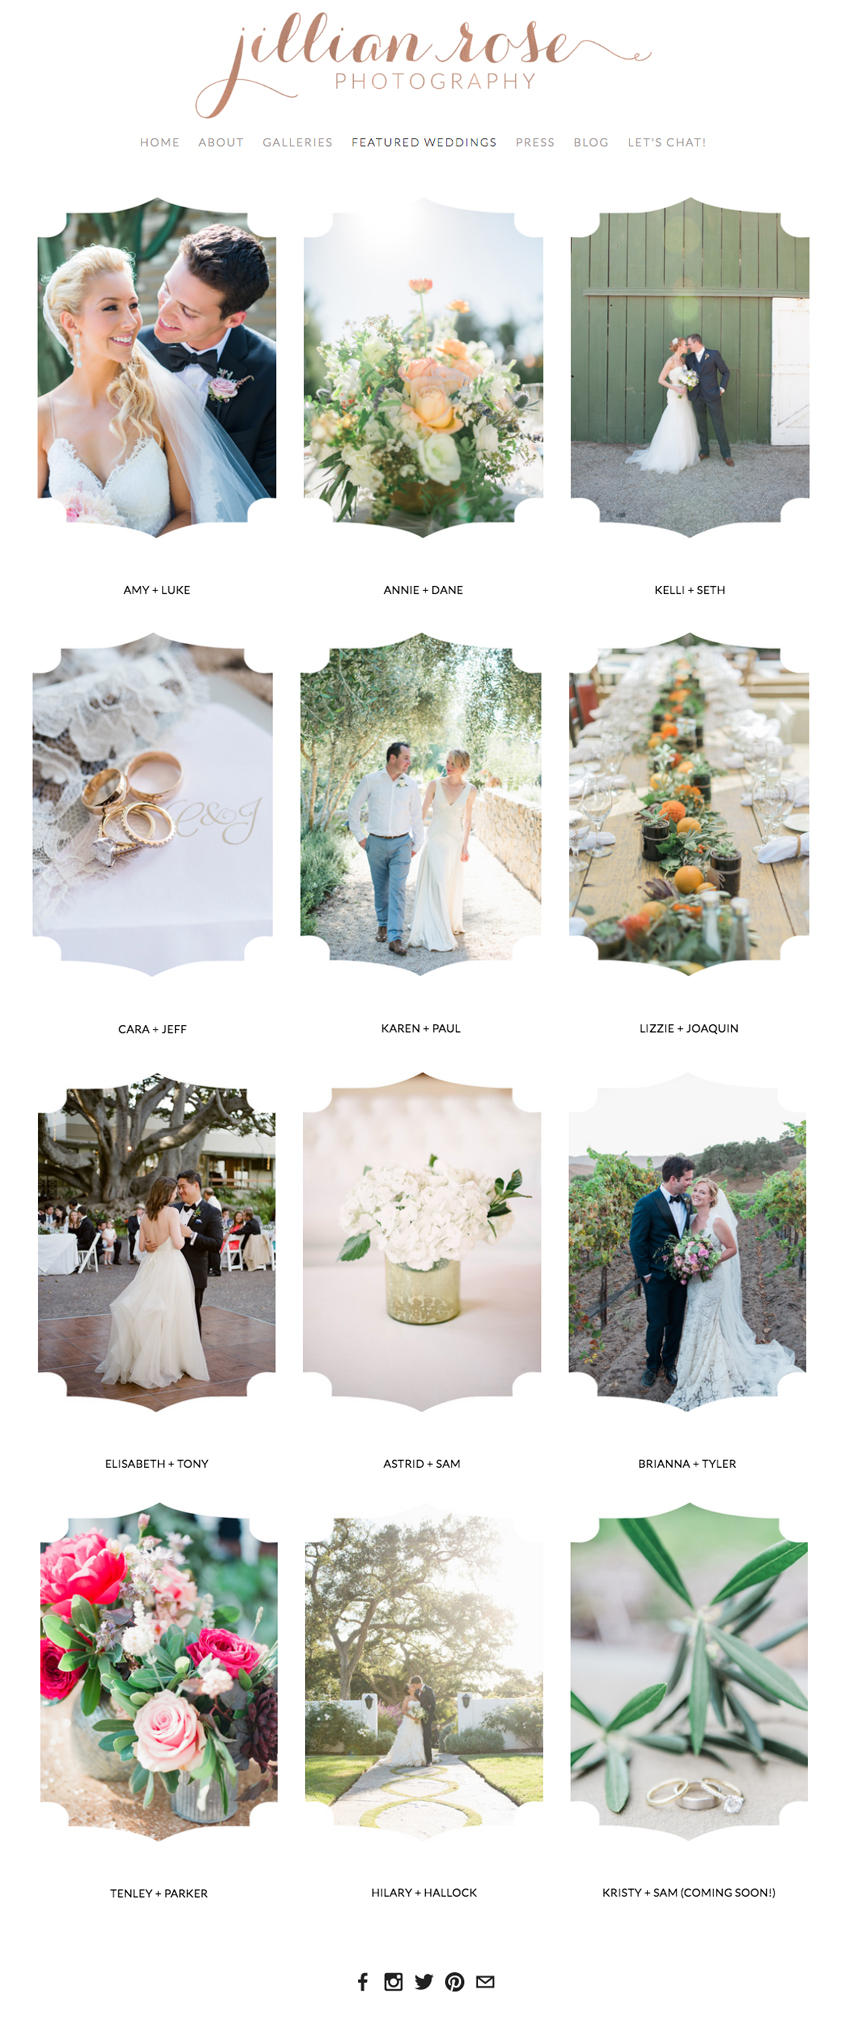 Jillian Rose Photography Website Designer | Squarespace Website Design by Heather Sharpe of The Editor's Touch